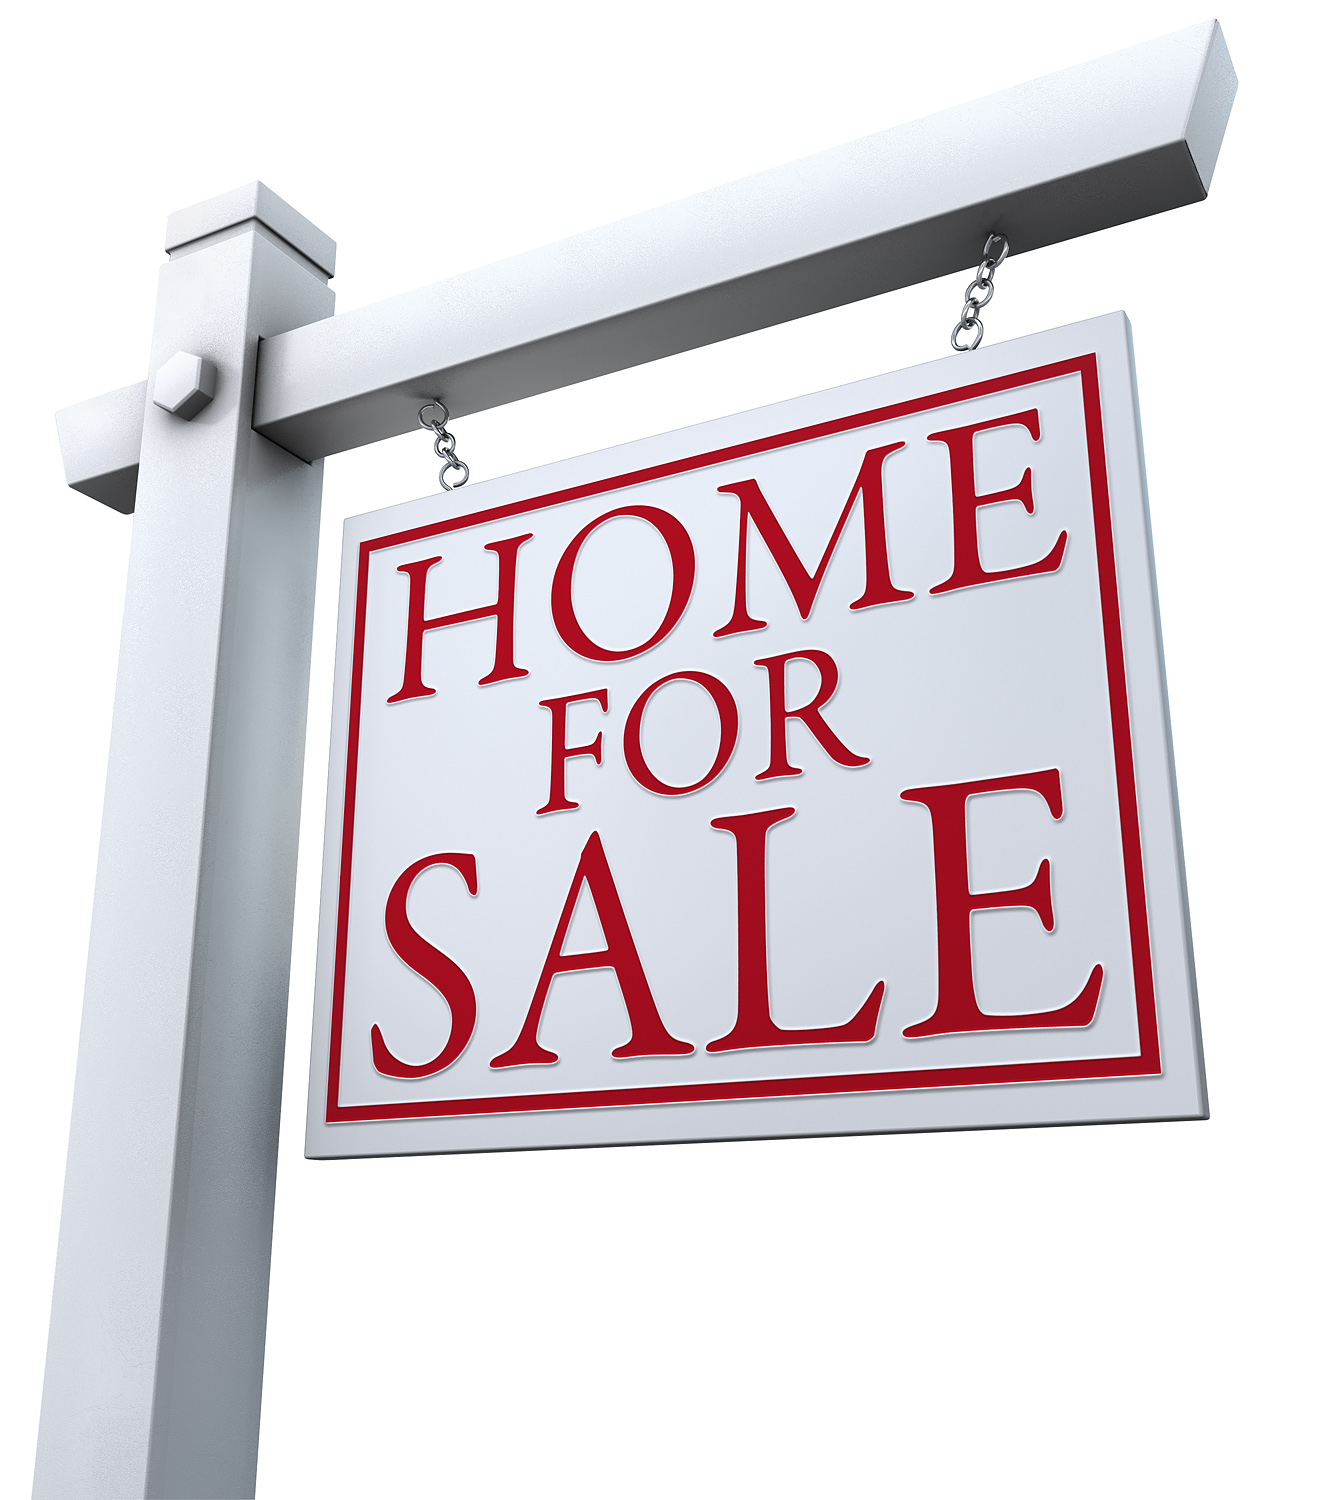 for sale signage